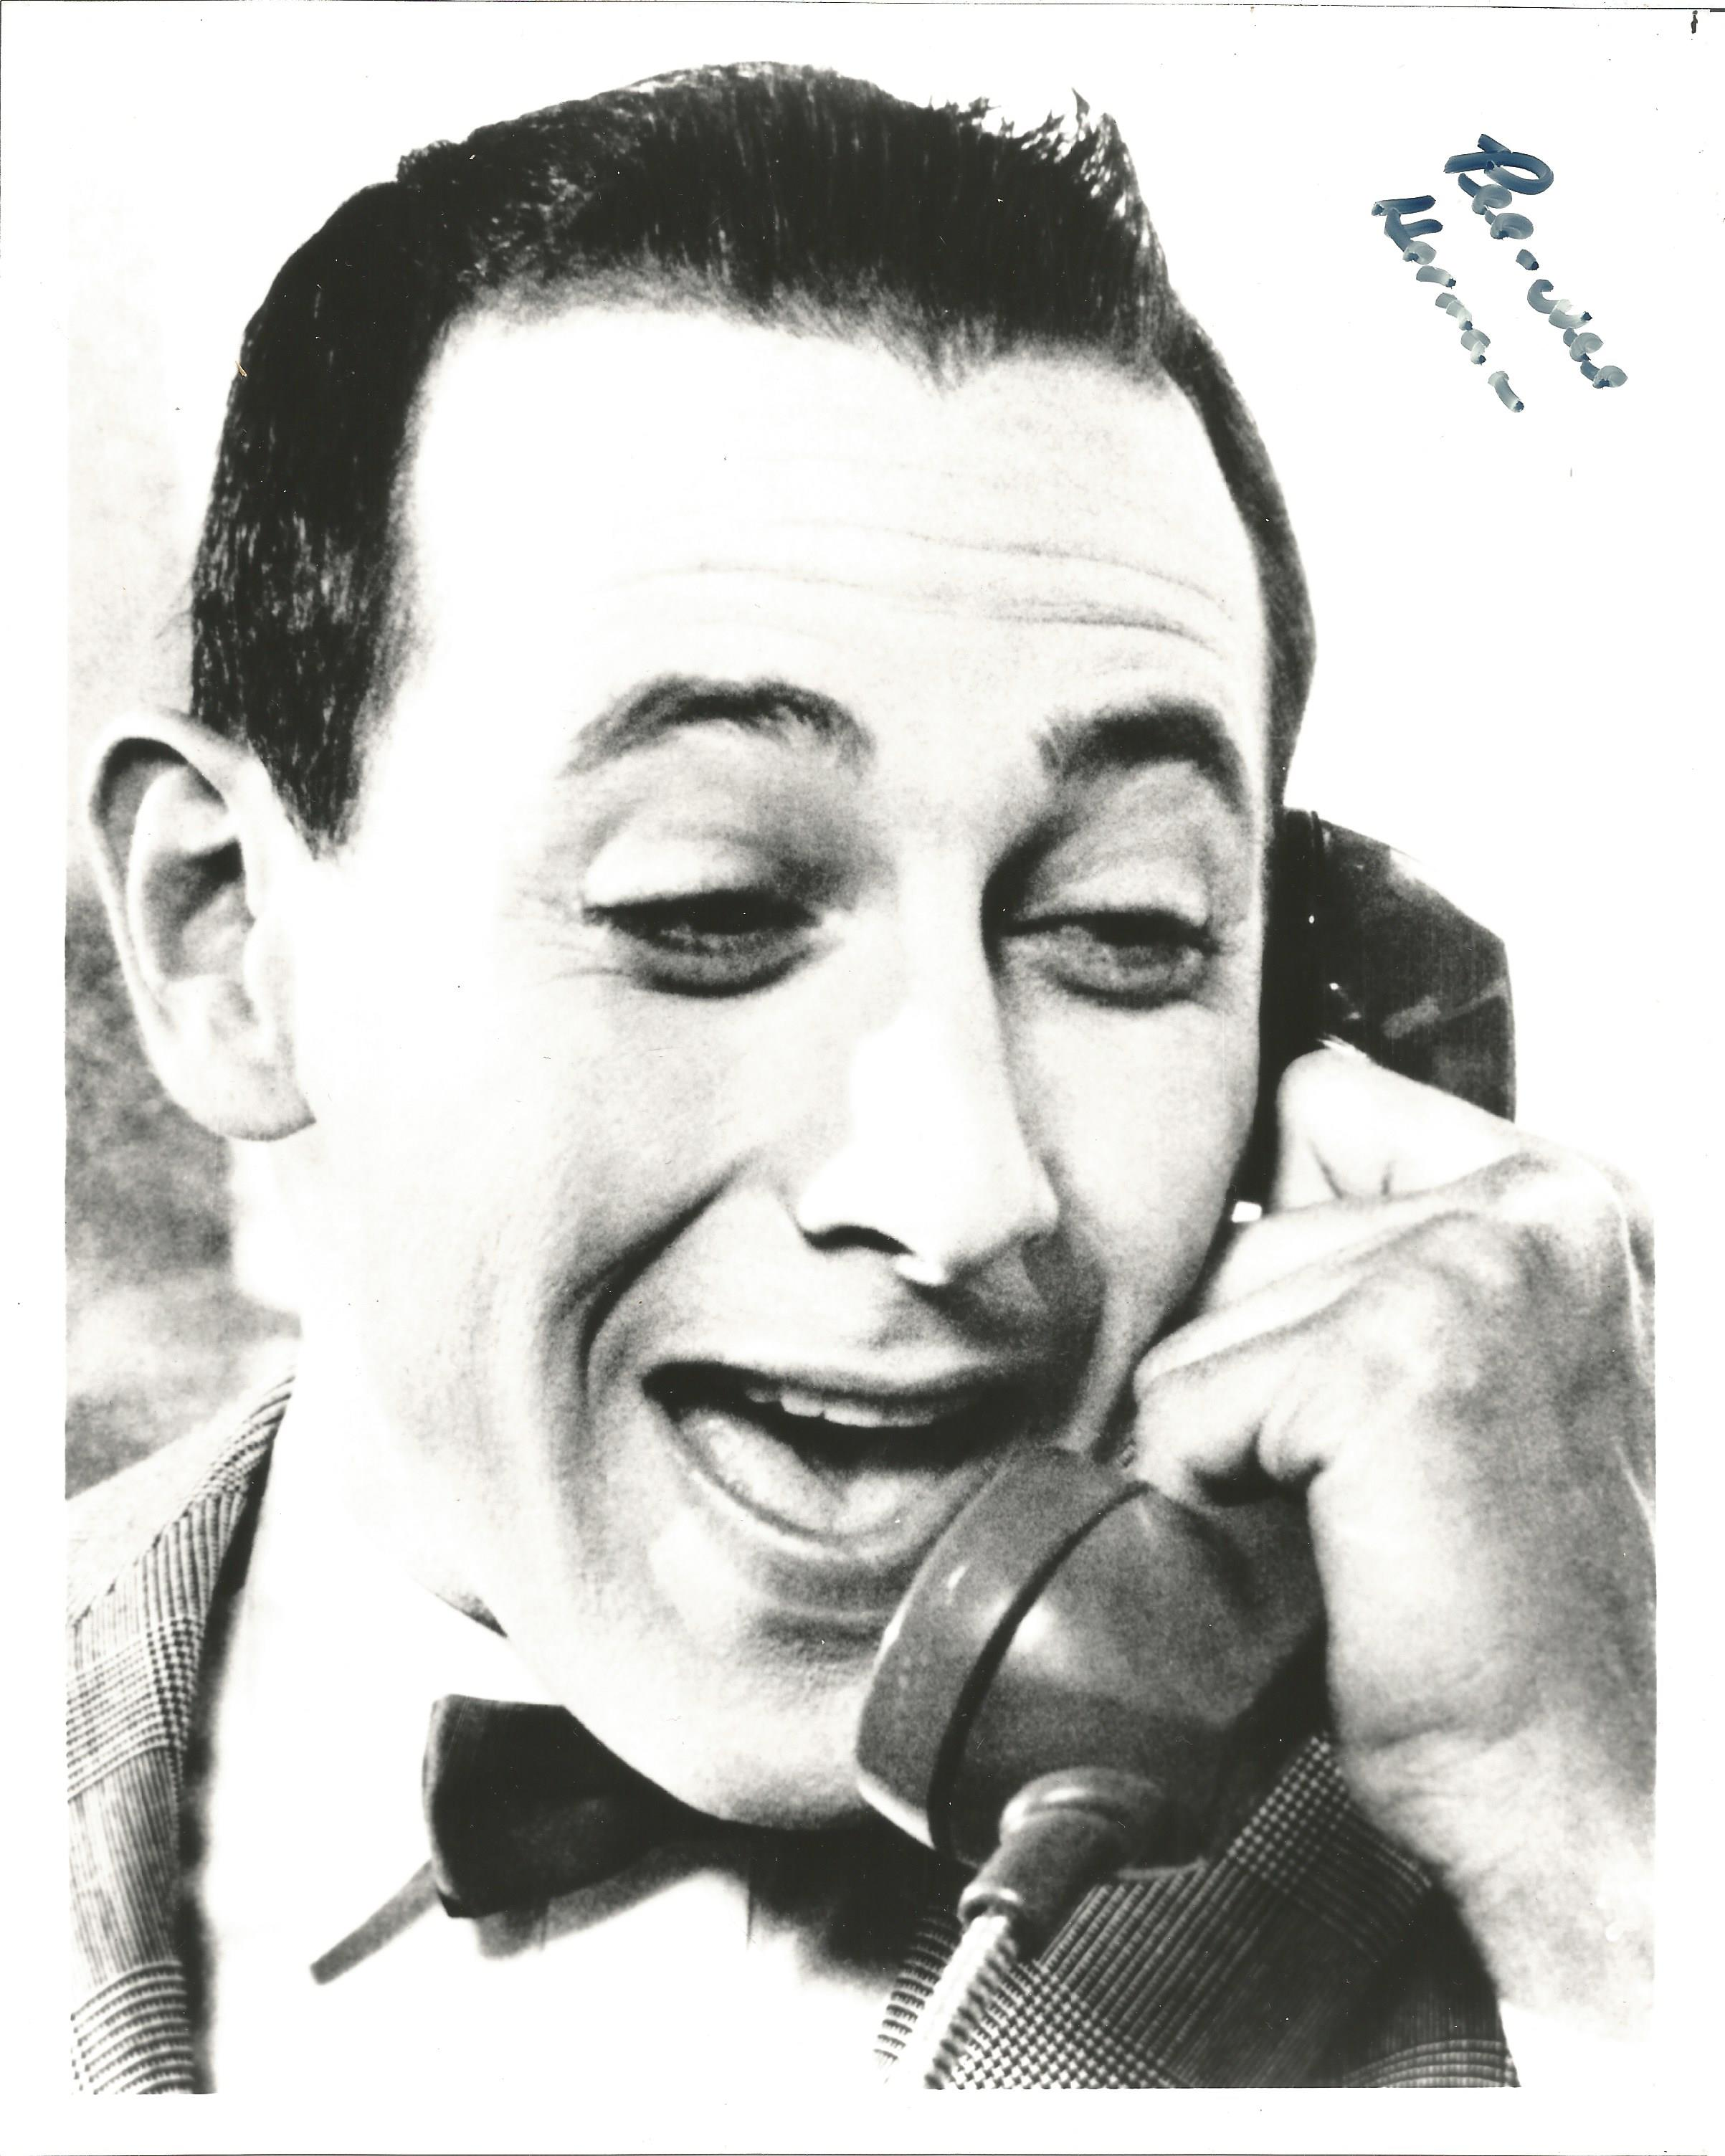 Character Pee Wee Herman signed 10x8 black and white image. Pee-wee Herman is a comic fictional